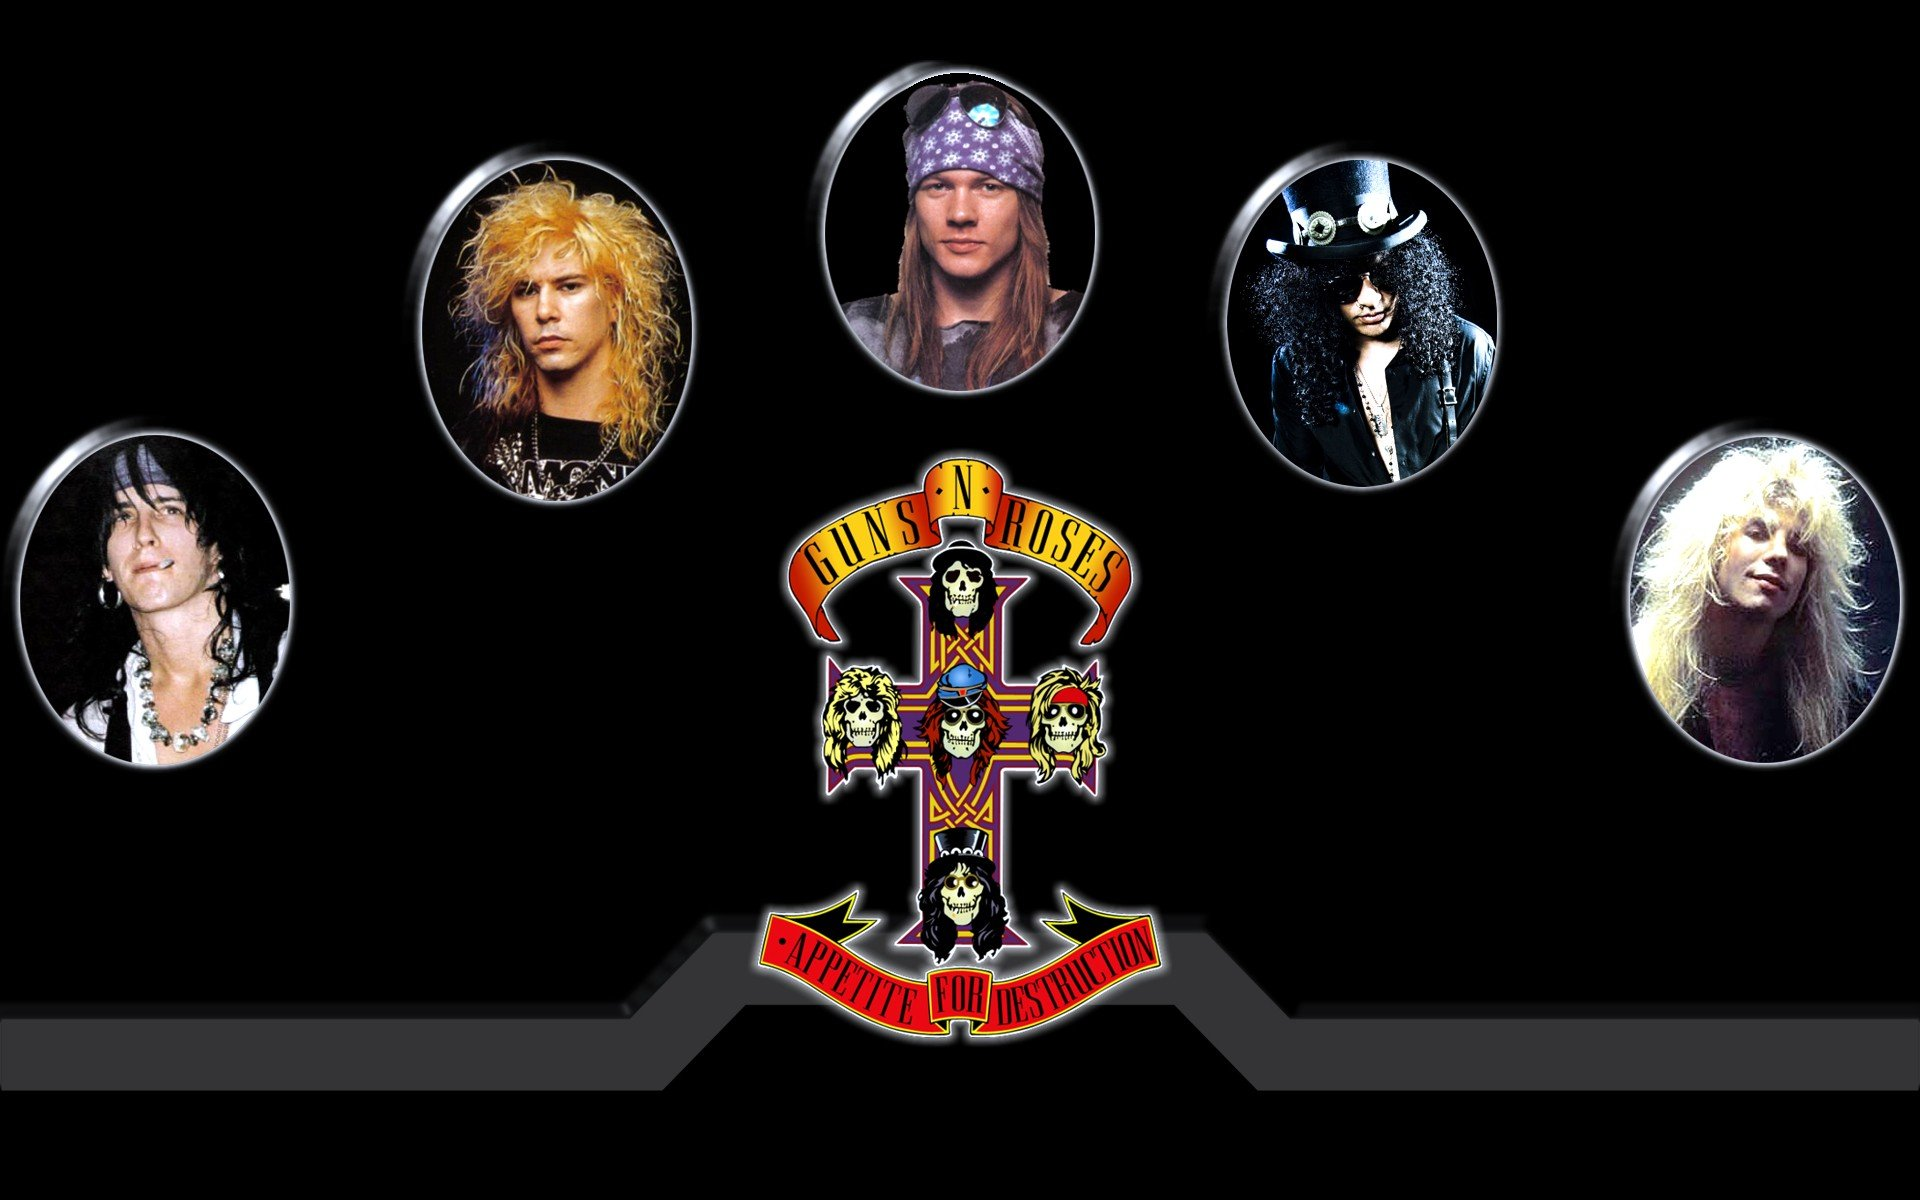 Guns N Roses Wallpapers HD For Desktop Backgrounds